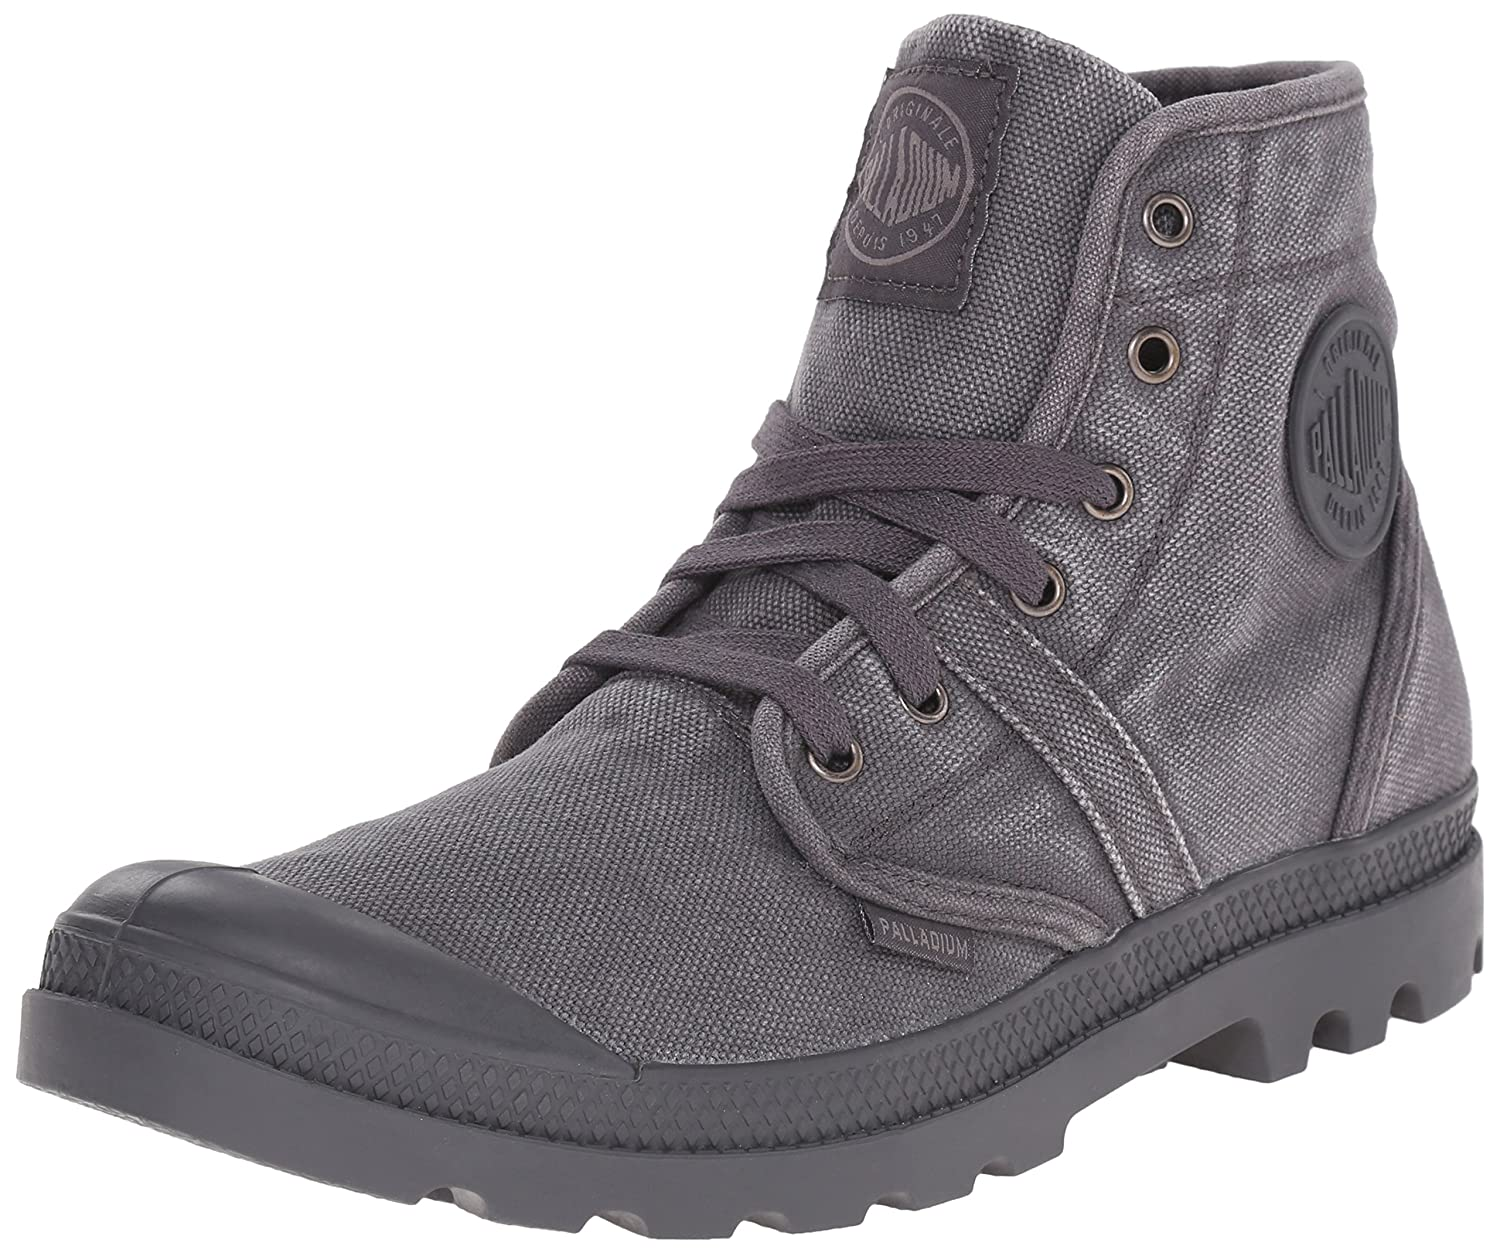 Palladium Pallabrouse, Botas Militar para Hombre, Gris (Forged Iron/Brush Nickel 084), 43 EU: Amazon.es: Zapatos y complementos